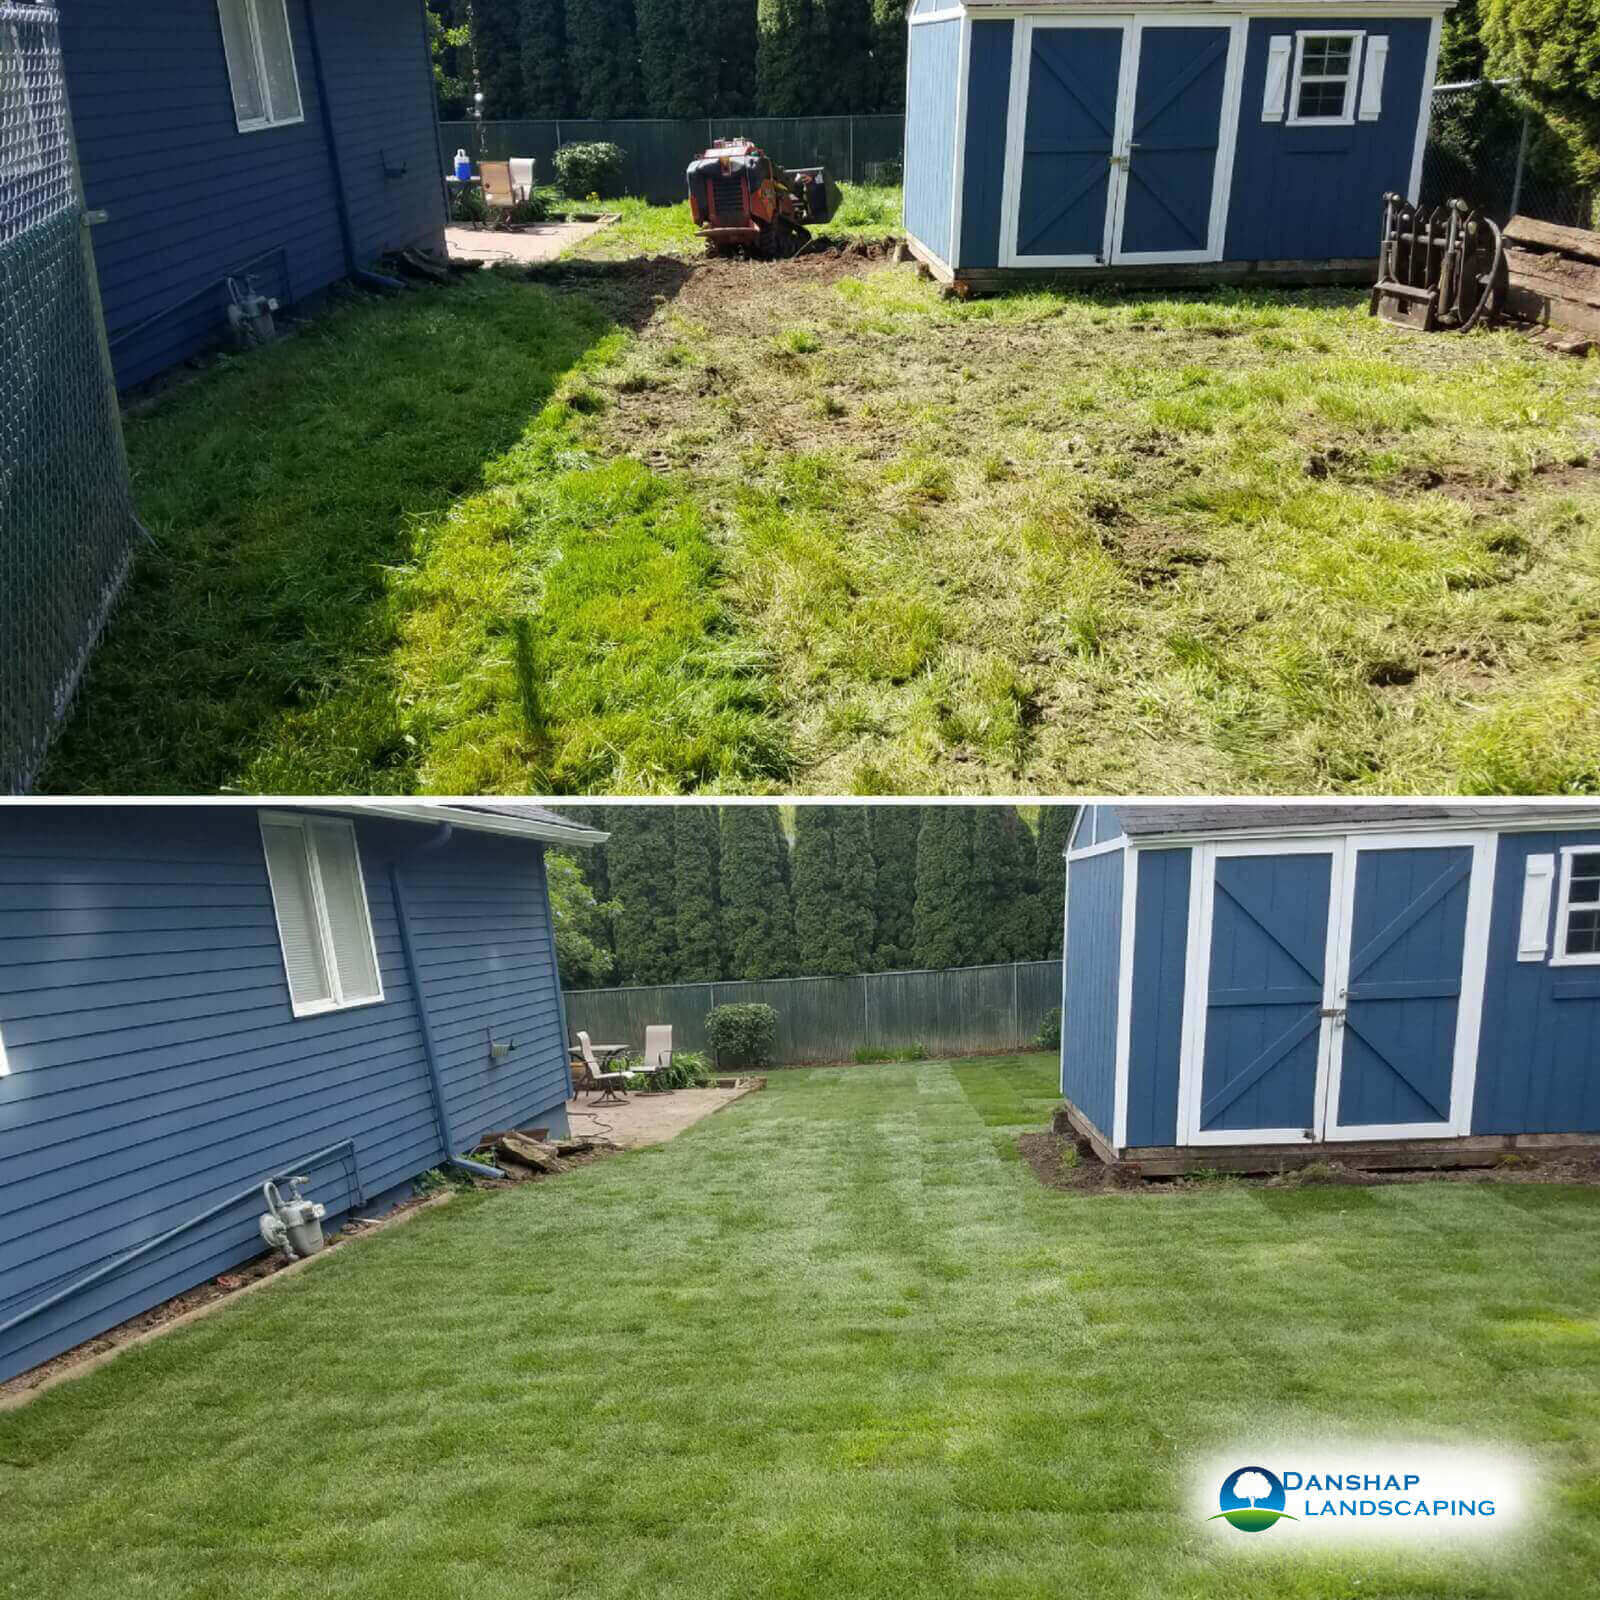 Sod-Replacement-Danshaplandscape-11